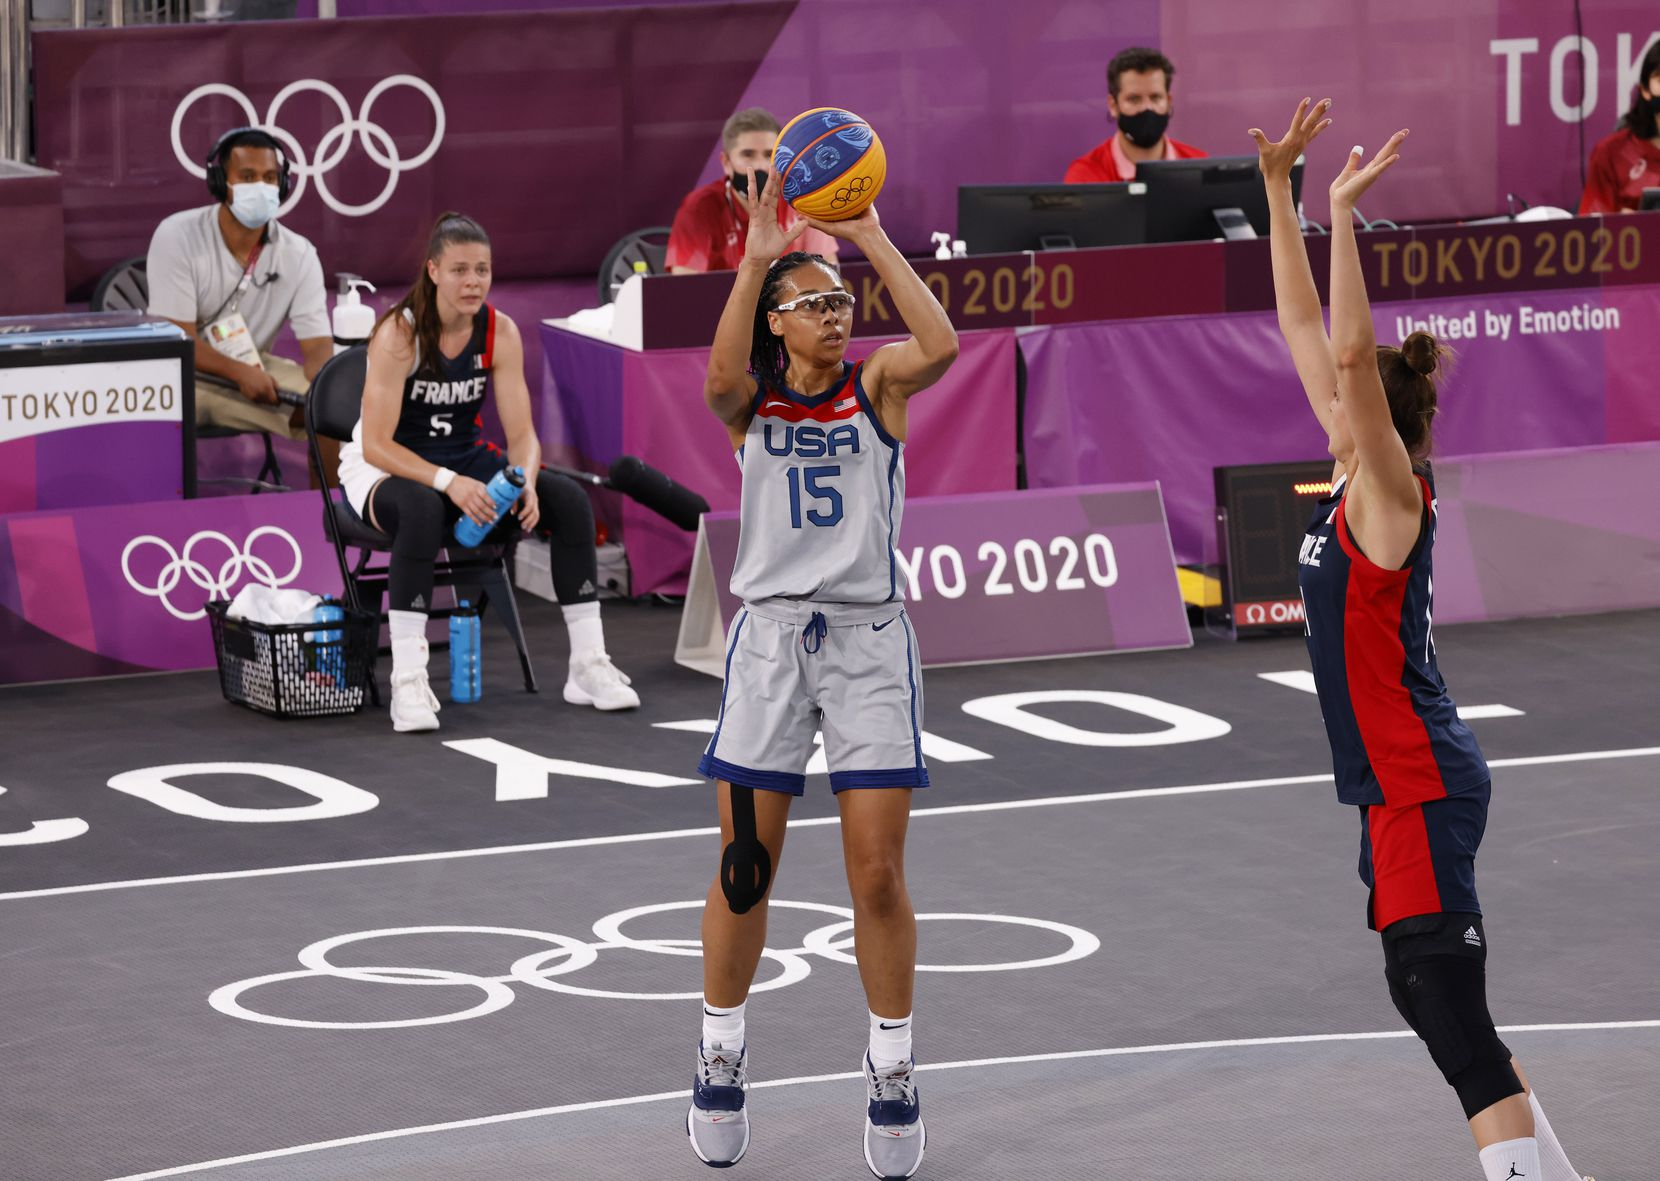 USA's Allisha Gray (15) shoots in front of France's Ana Maria Filip (11) in a 3x3 women's basketball game during the postponed 2020 Tokyo Olympics at Aomi Urban Sports Park on Saturday, July 24, 2021, in Tokyo, Japan. USA defeated France 17-10 in the game. (Vernon Bryant/The Dallas Morning News)